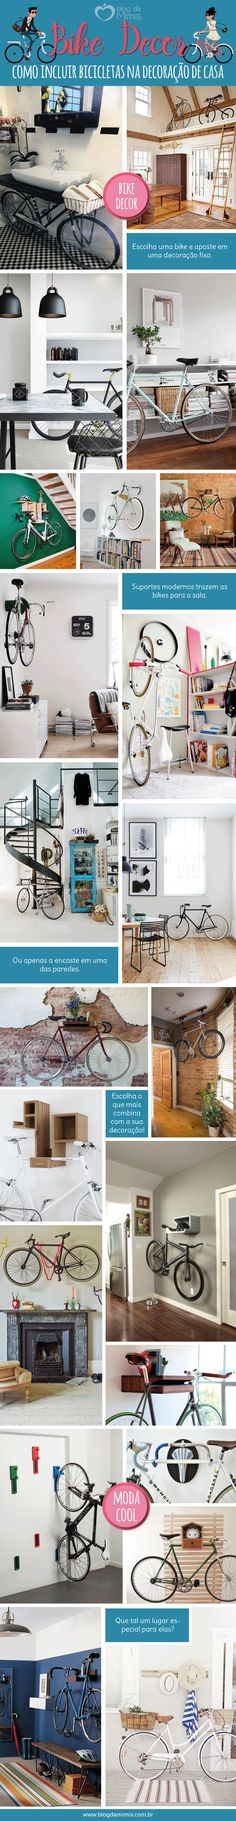 Bike decor: como inc